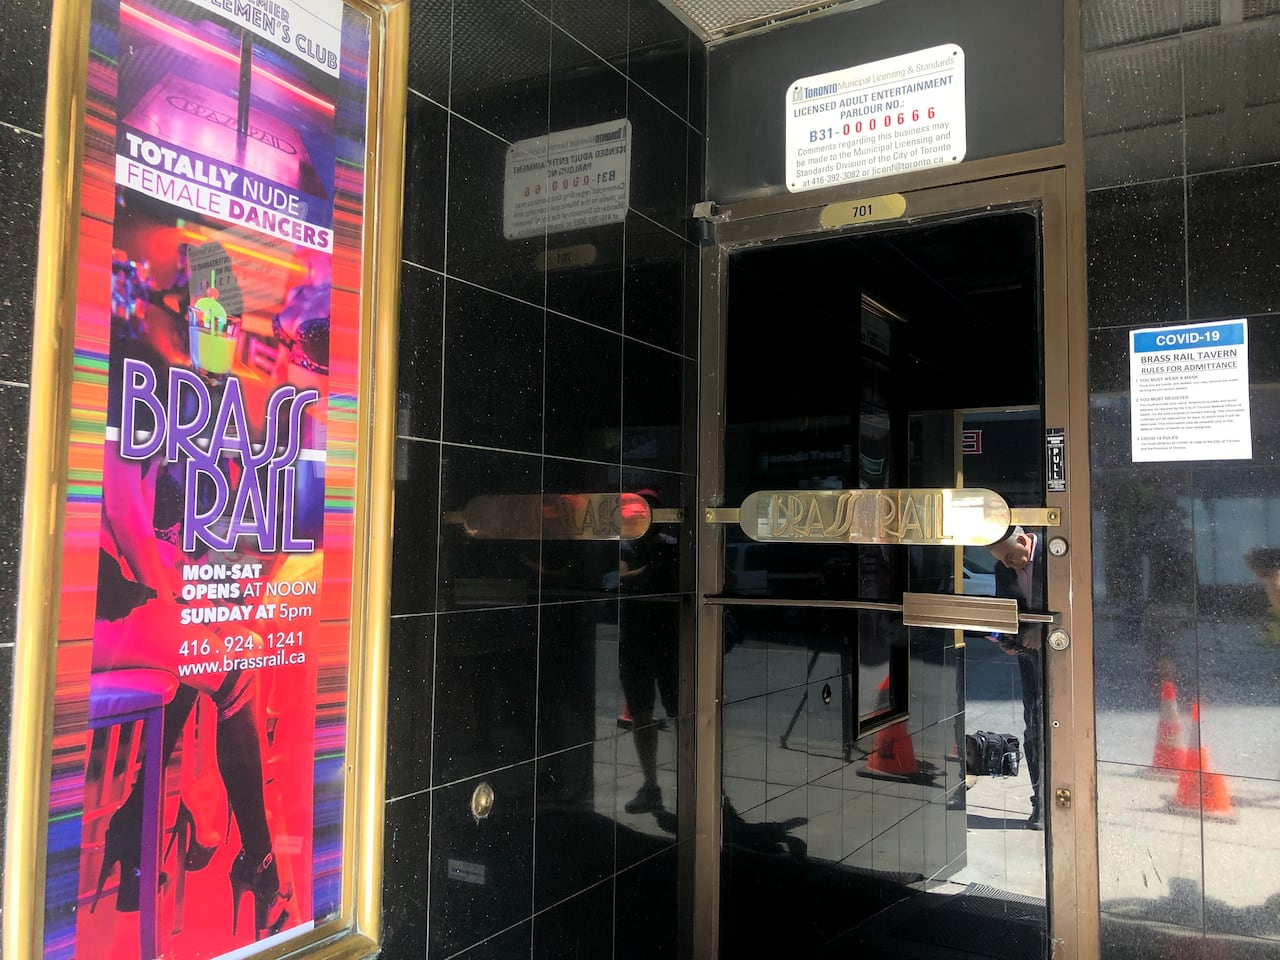 City Warns Hundreds May Have Been Exposed To Covid 19 At Brass Rail Strip Club Cbc News